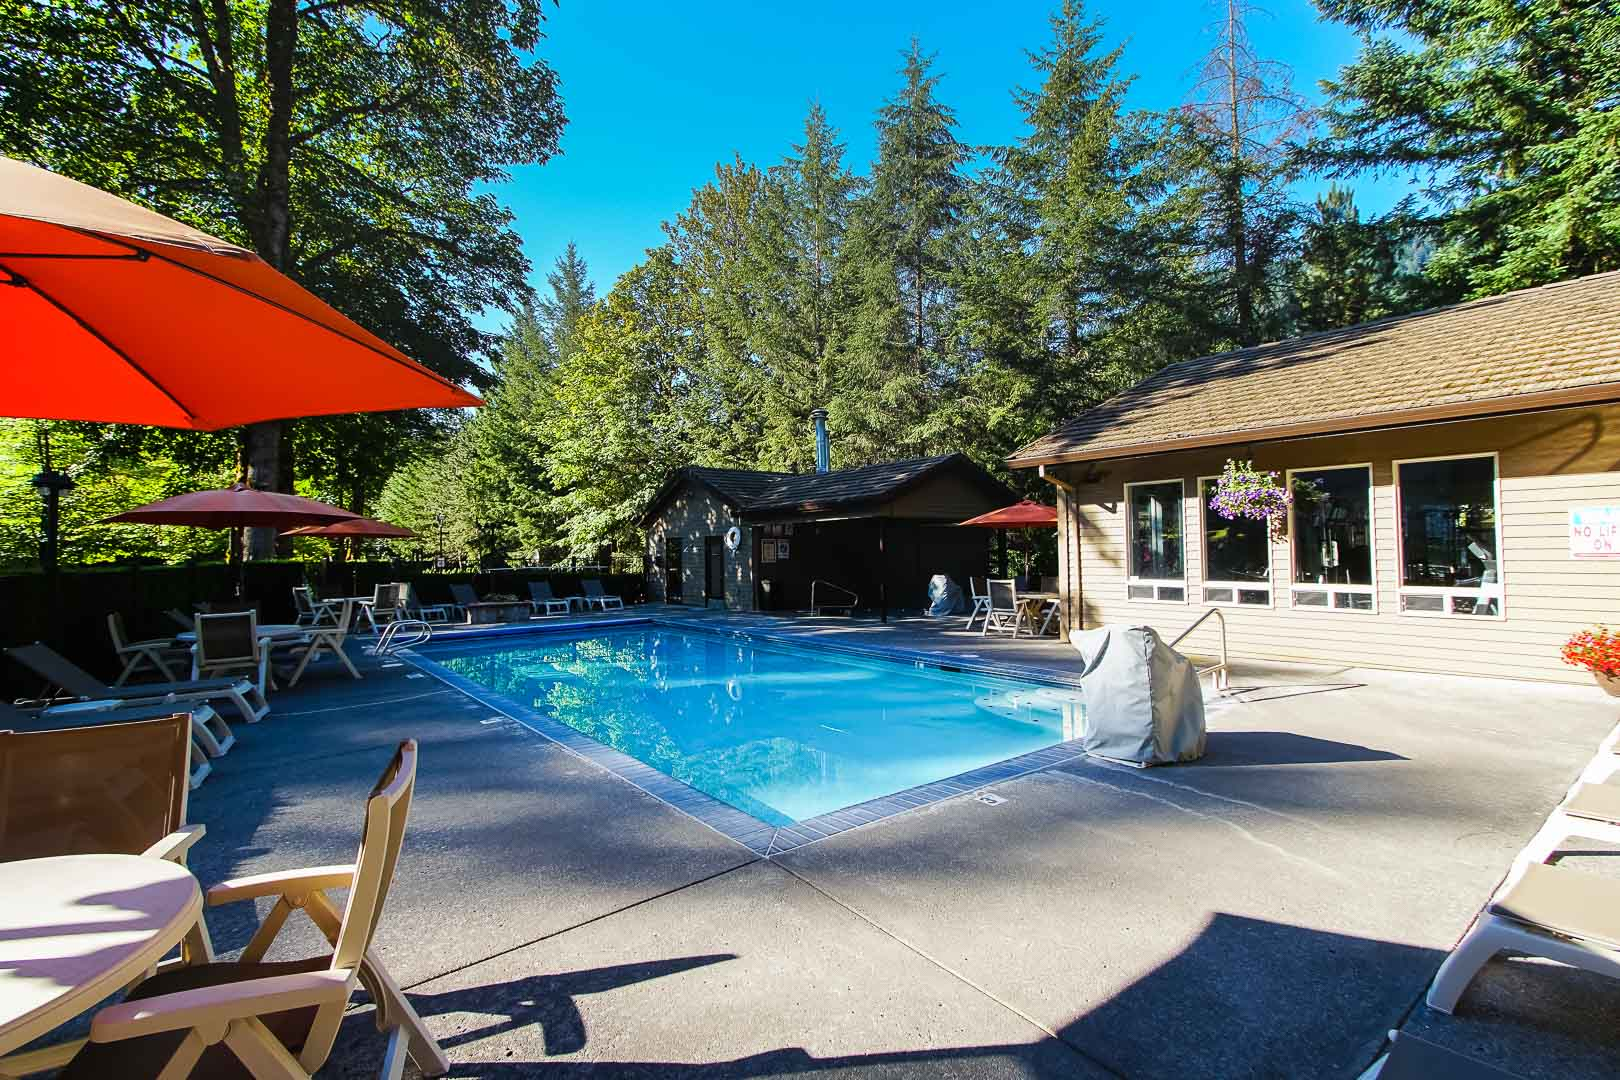 A spacious outdoor swimming pool at VRI's Whispering Woods Resort in Oregon.